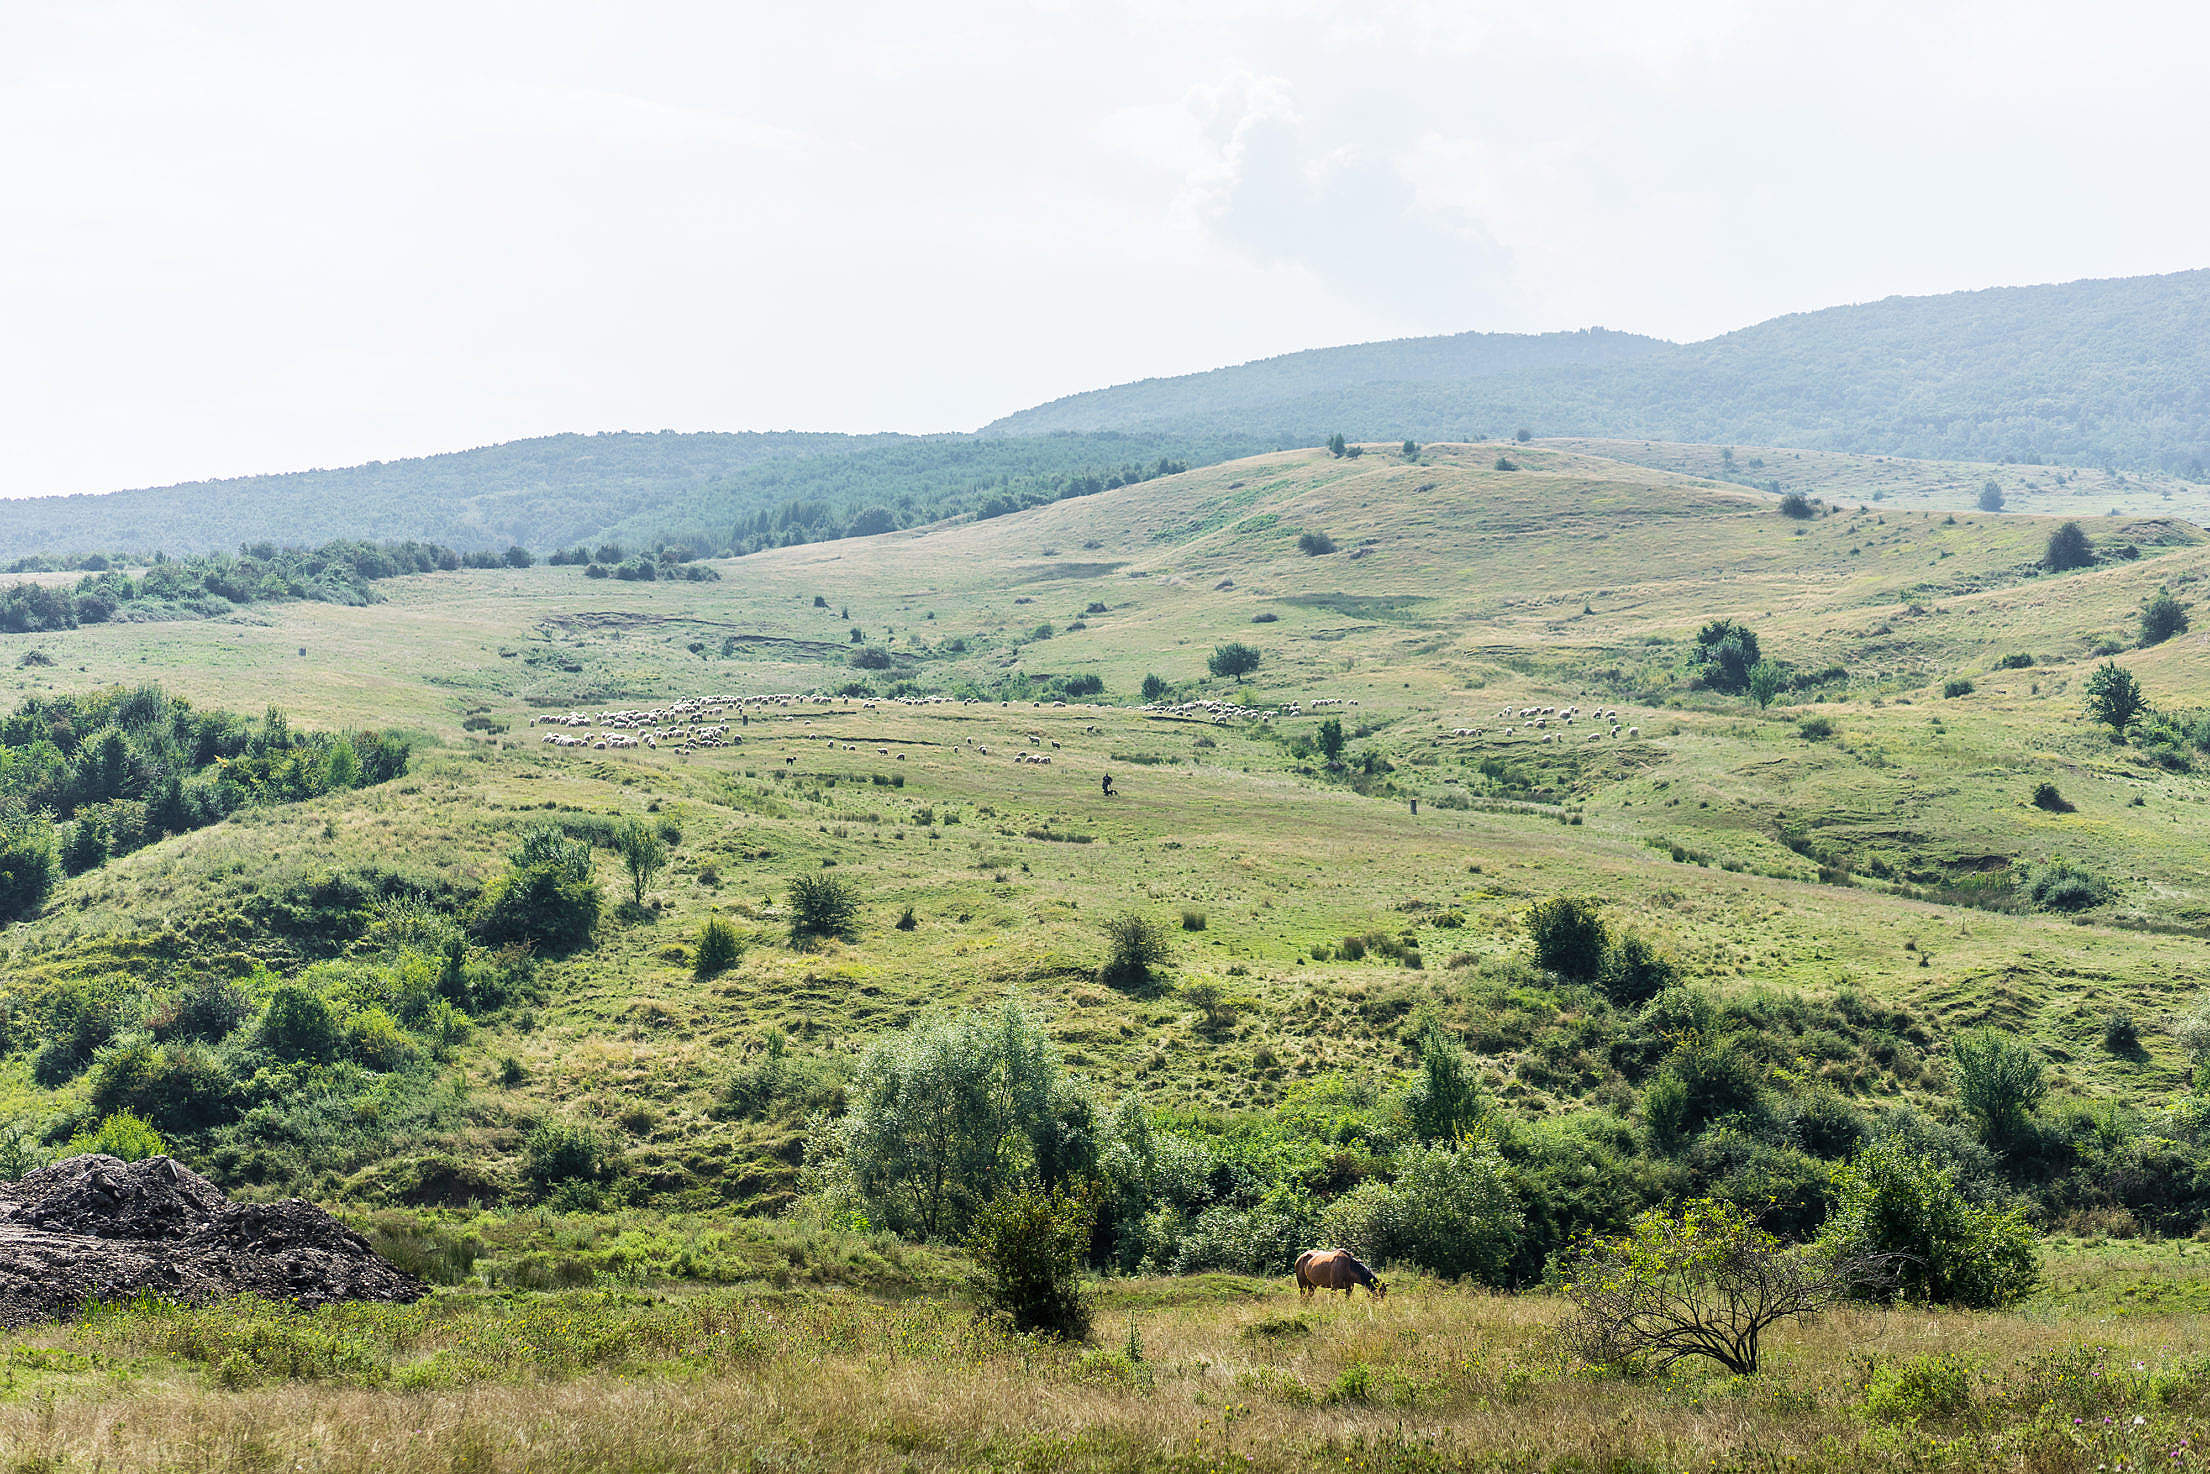 Romanian Nature with Horse and Flock of Sheep Free Stock Photo